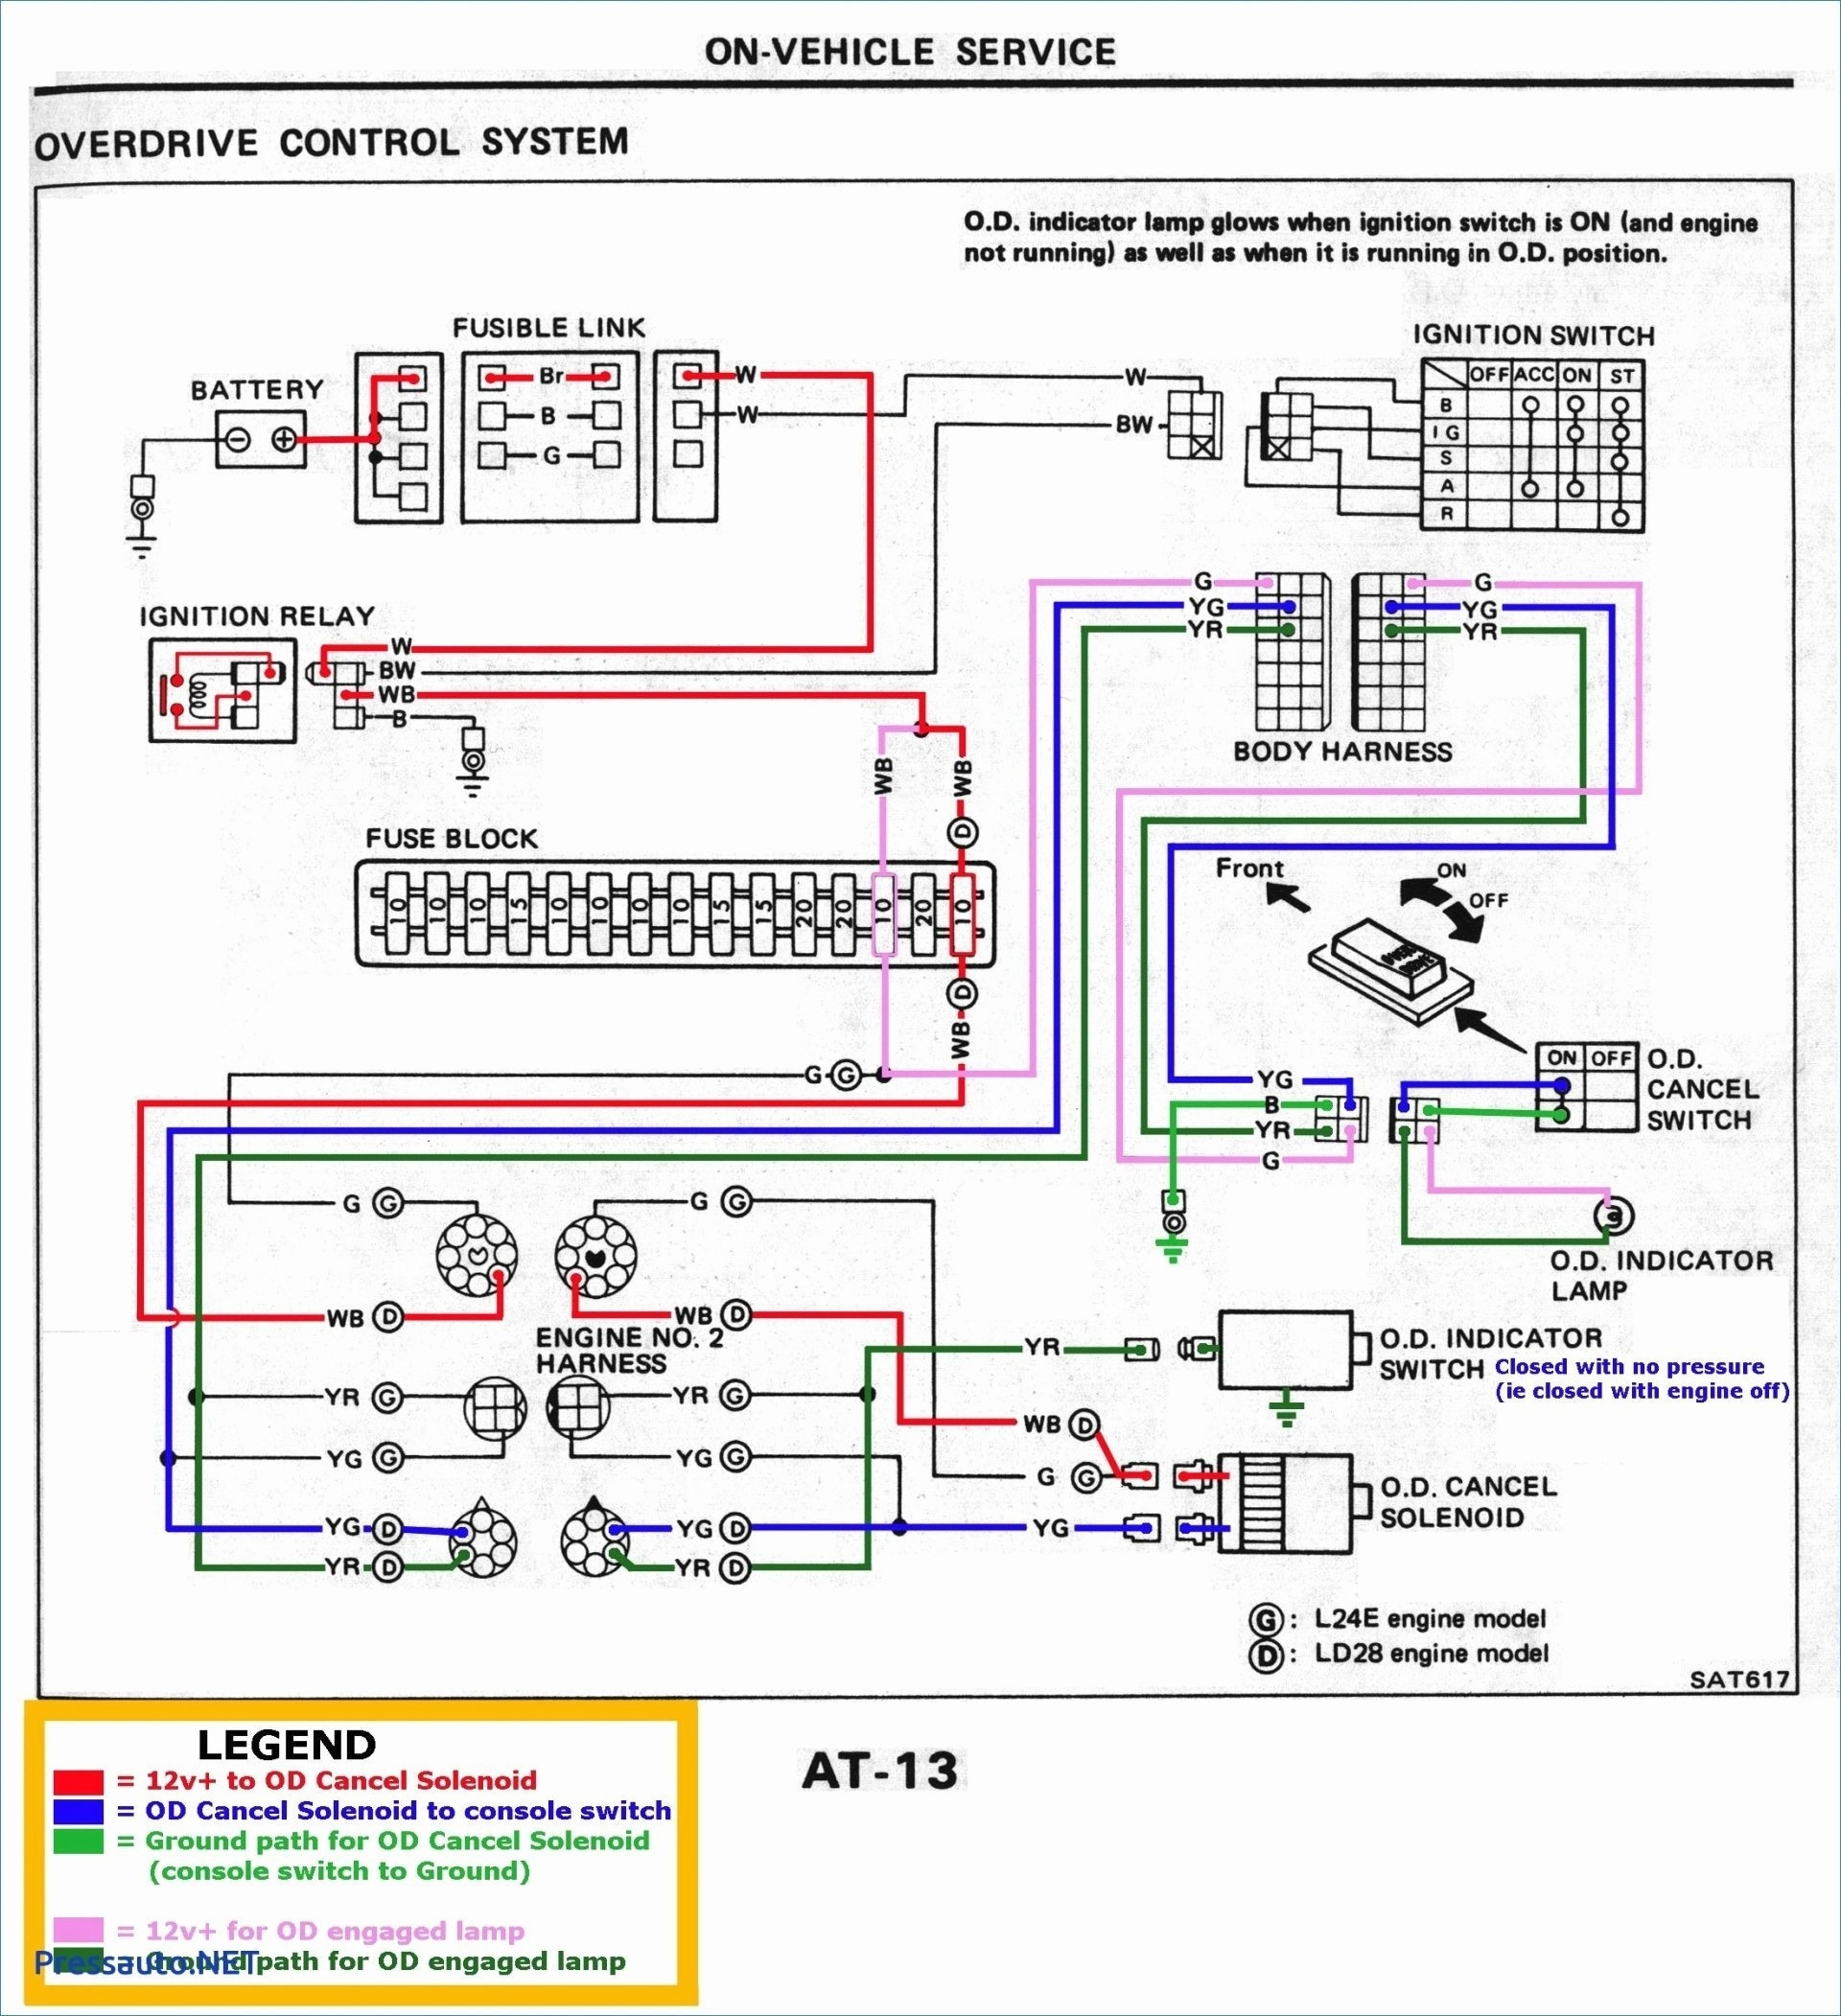 Mini Alternator Wiring Diagram - Wiring Diagram Data Today on chevy 3 wire alternator diagram, chevy fuel gauge wiring diagram, hei distributor wiring diagram, chevy fuel pump wiring diagram, gm internal regulator wiring diagram, chevy truck wiring diagram, chevy blazer radio wiring diagram, starter solenoid wiring diagram, 1997 chevy malibu wiring diagram, gm alternator diagram, chevy wiring harness diagram, chevy ignition wiring diagram, chevy distributor wiring diagram, 1987 chevy wiring diagram, chevy speaker wiring diagram, chevy a/c compressor wiring diagram, chevy volt wiring diagram, chevy alternator plug, chevy 3 wire alternator problems, chevy engine wiring diagram,